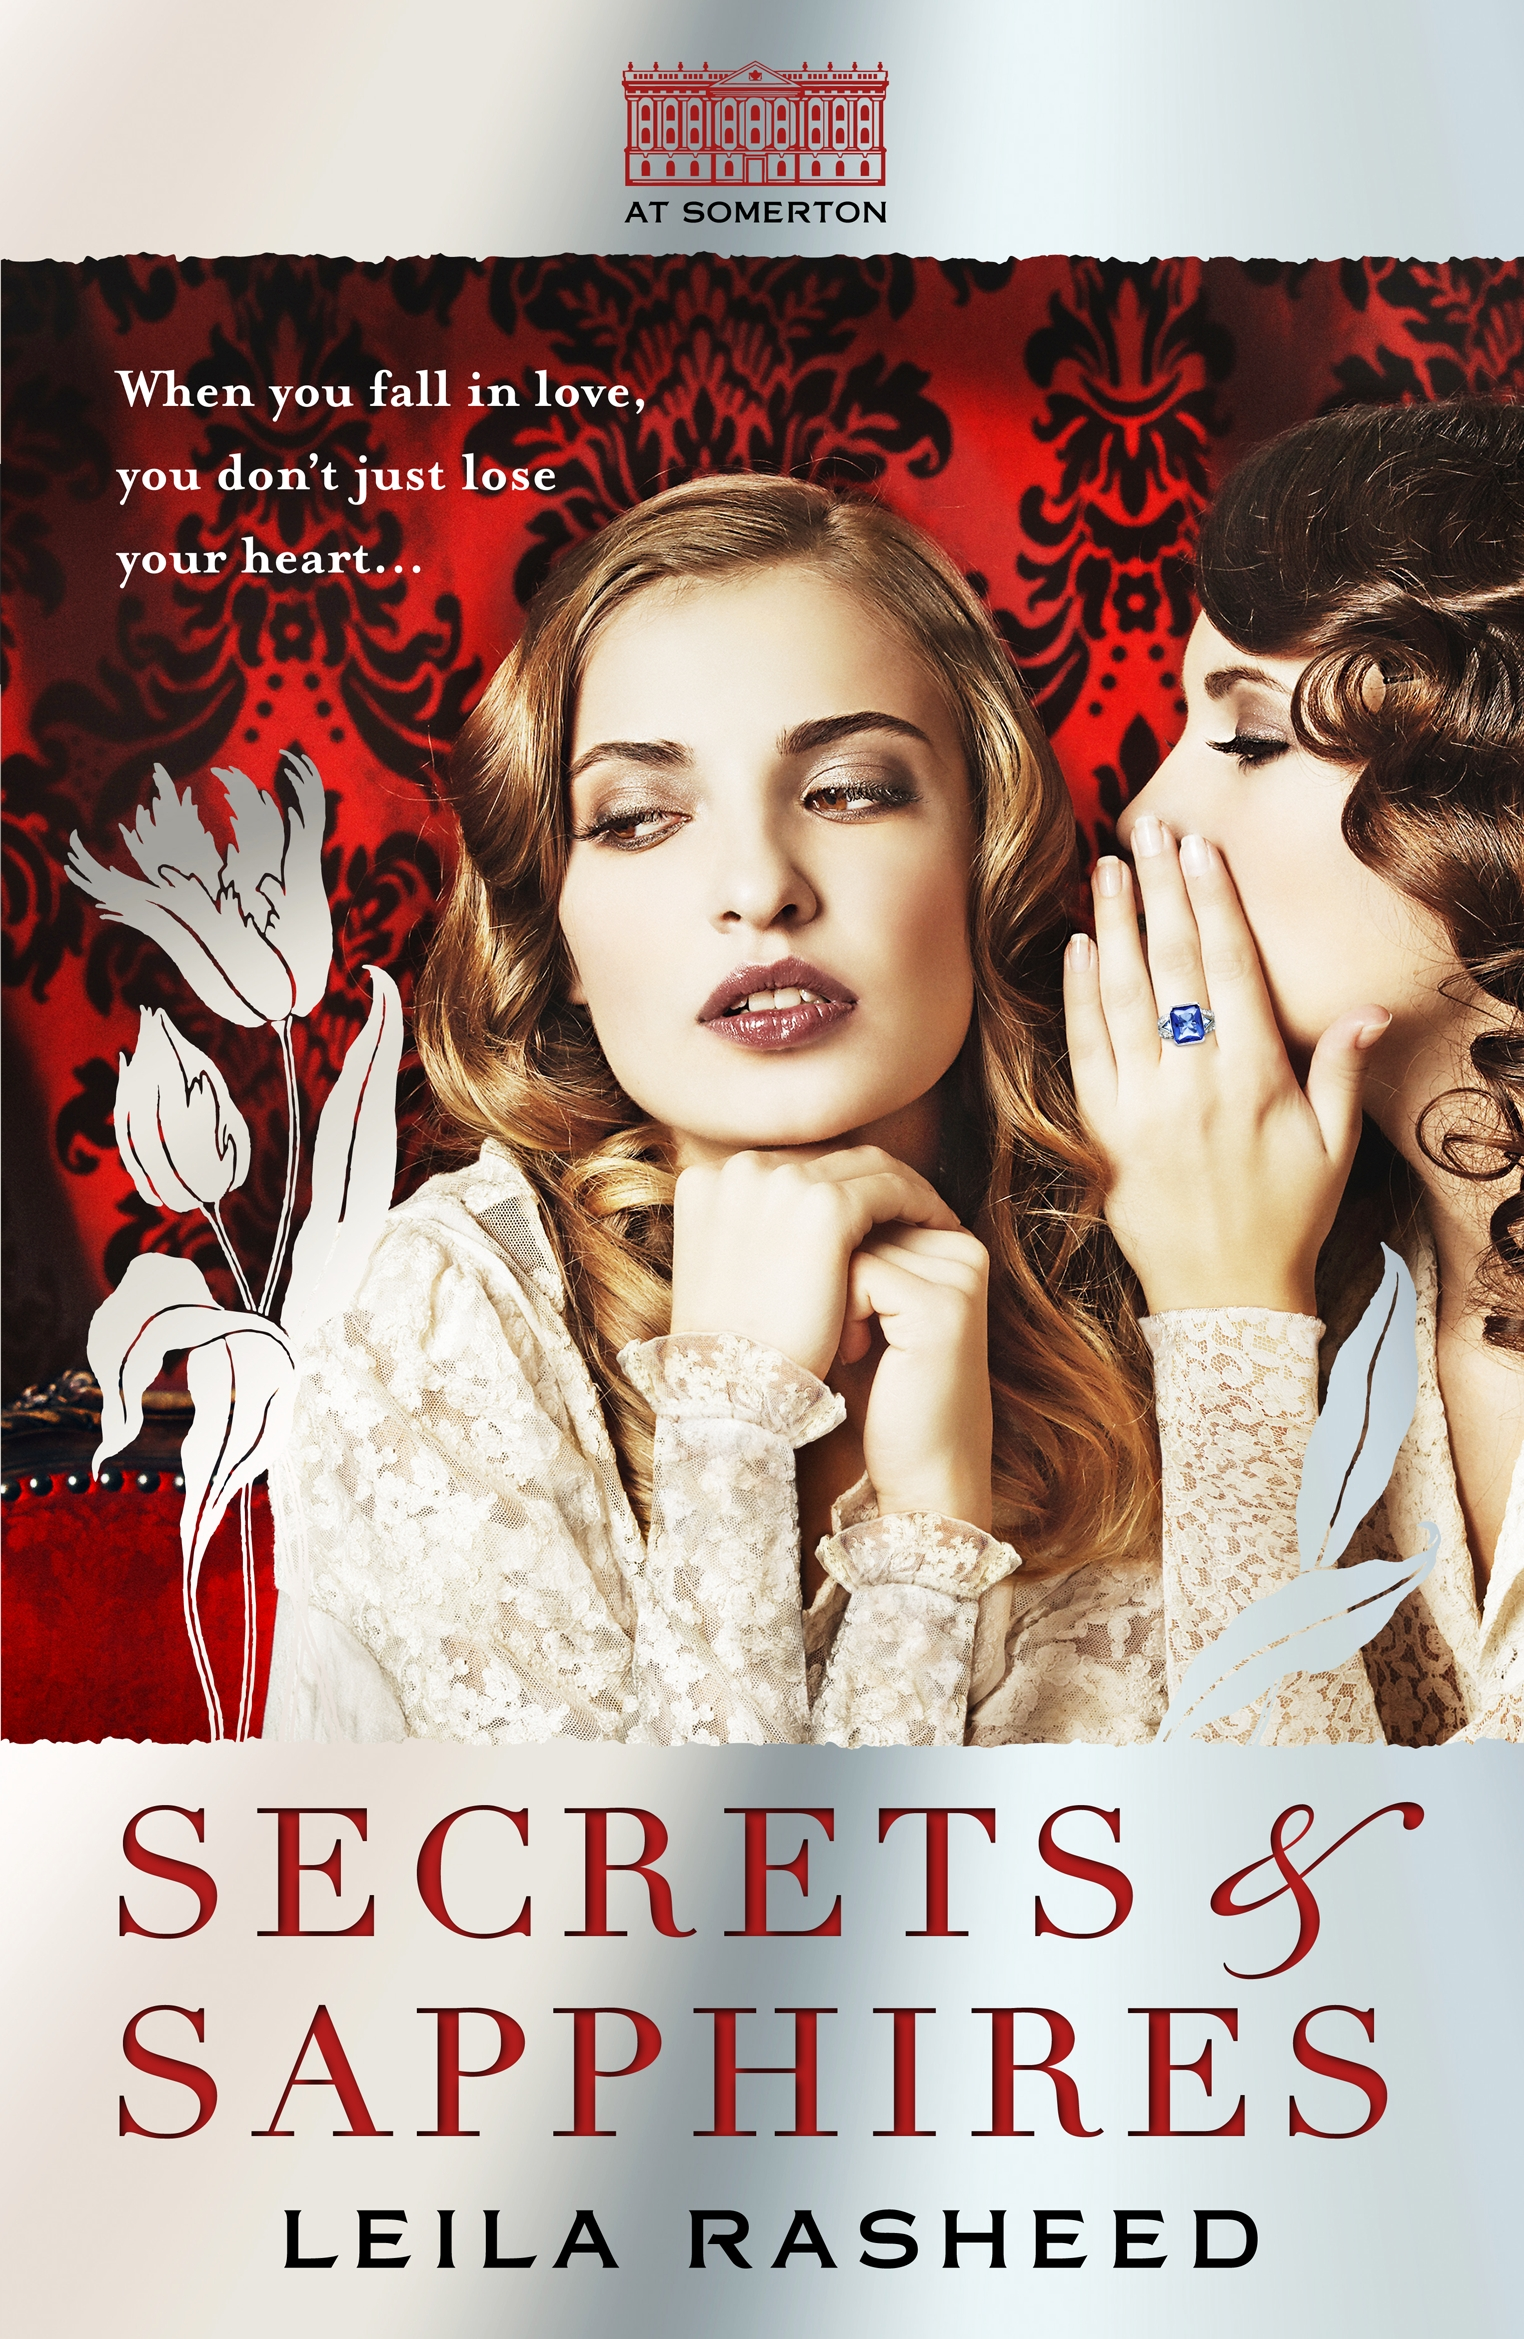 Secrets & Sapphires by Leila Rasheed